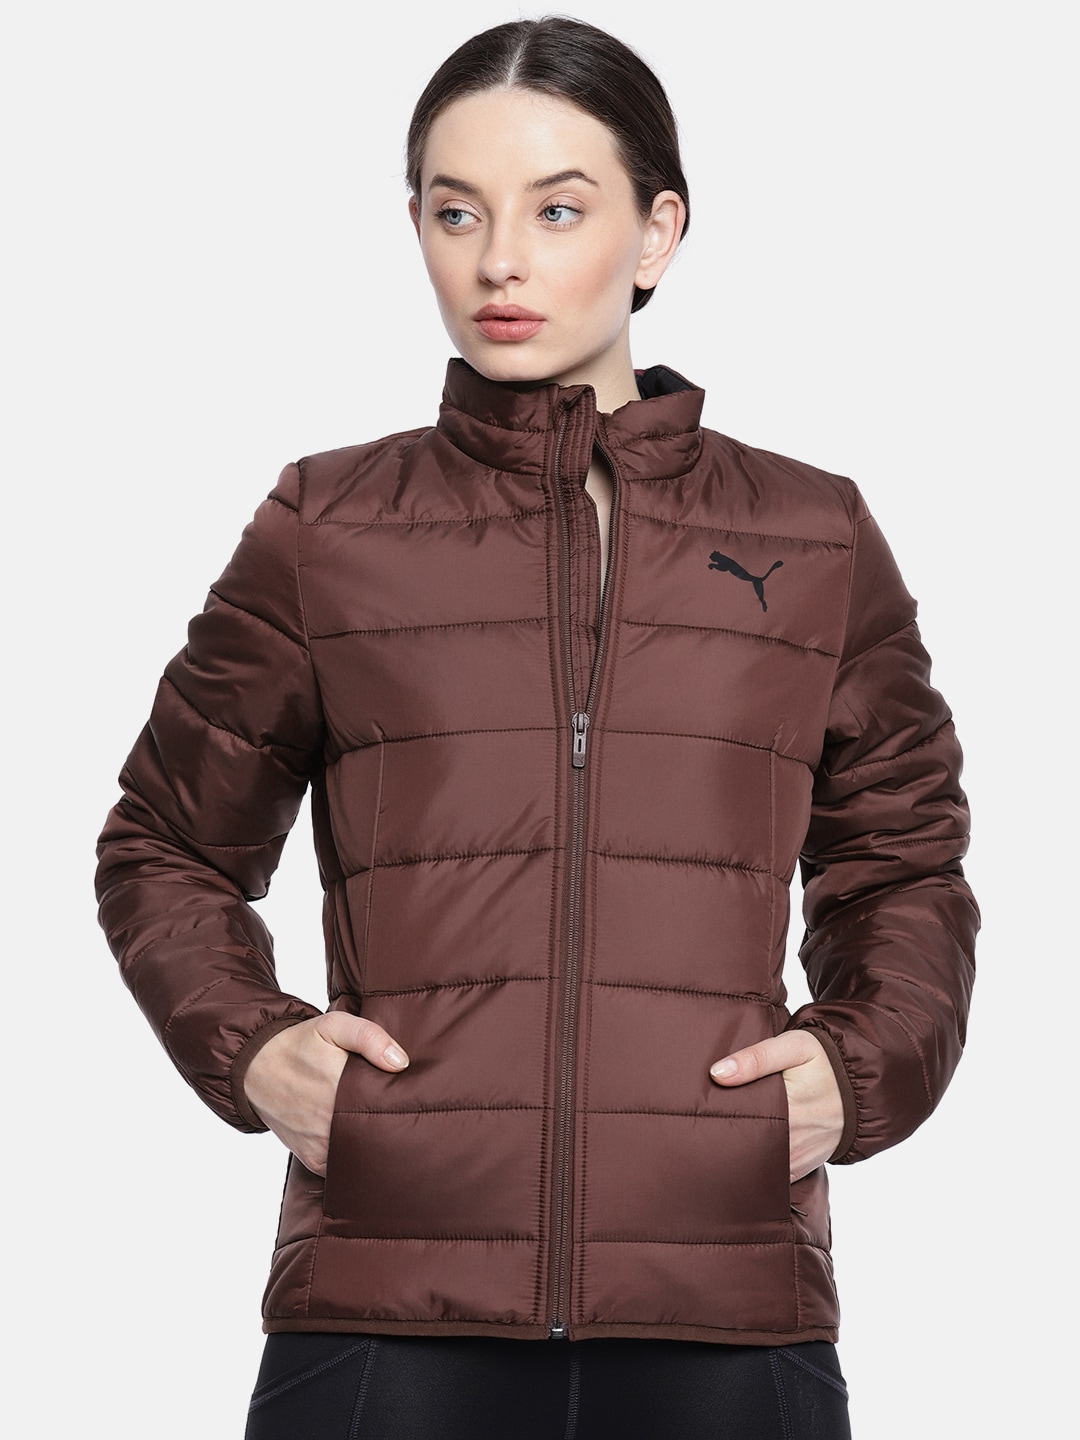 3eeac4138567 Puma Jackets For Women - Buy Puma Jackets For Women online in India